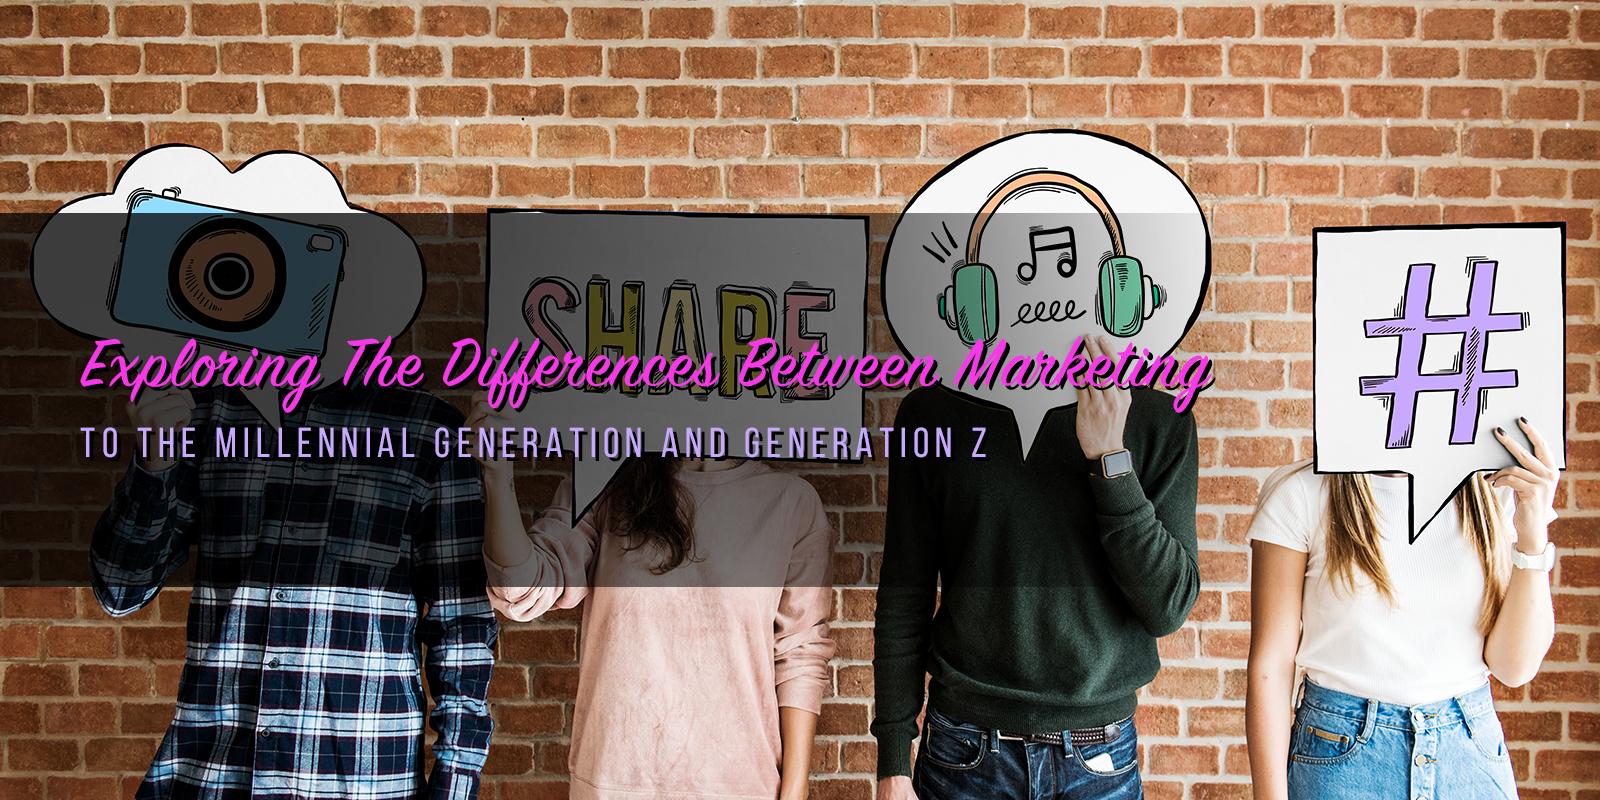 Exploring The Differences Between Marketing To The Millennial Generation And Generation Z